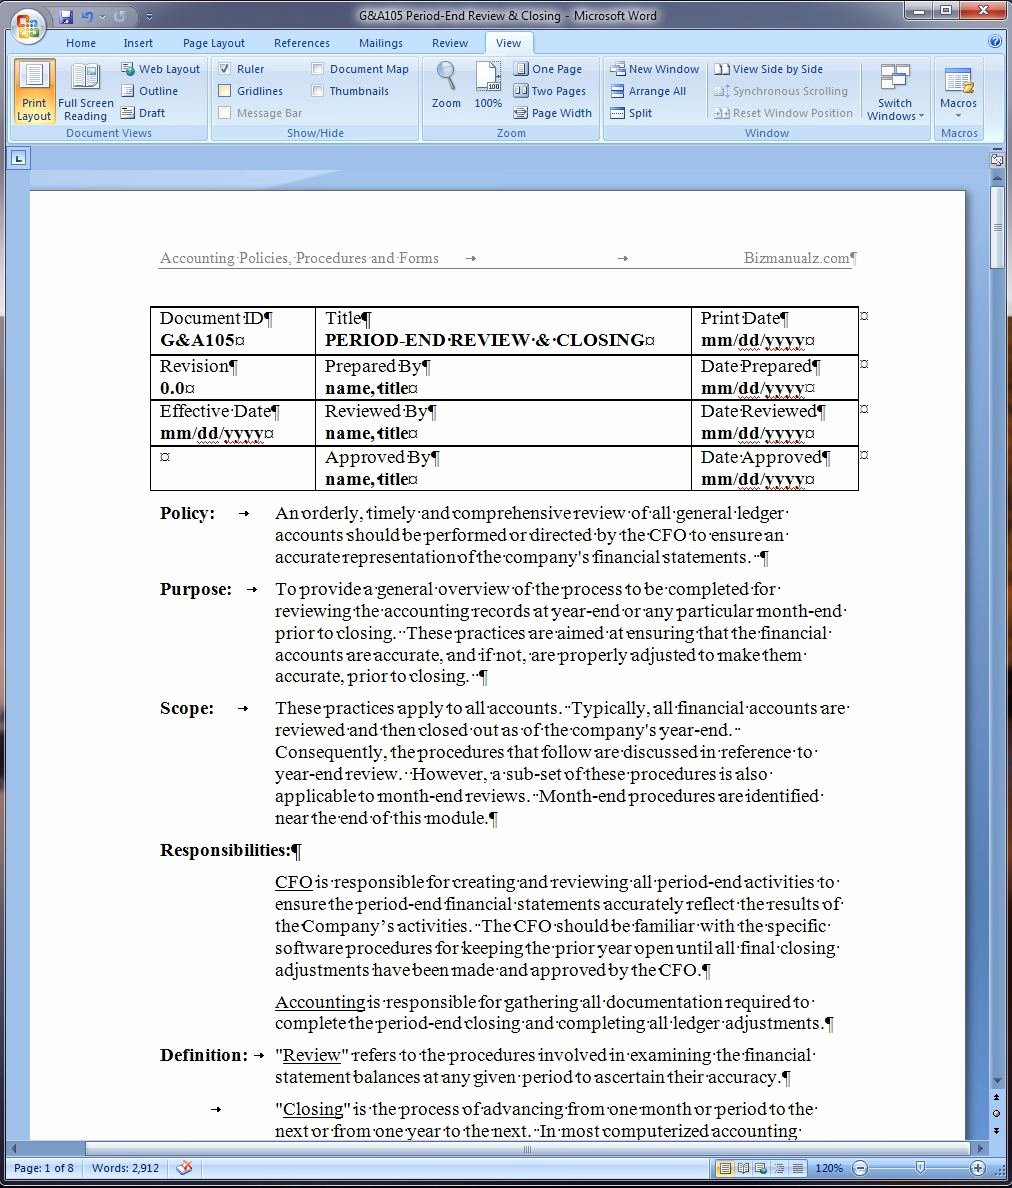 Process Document Template Word New Period End Review and Closing Policy and Procedure Word